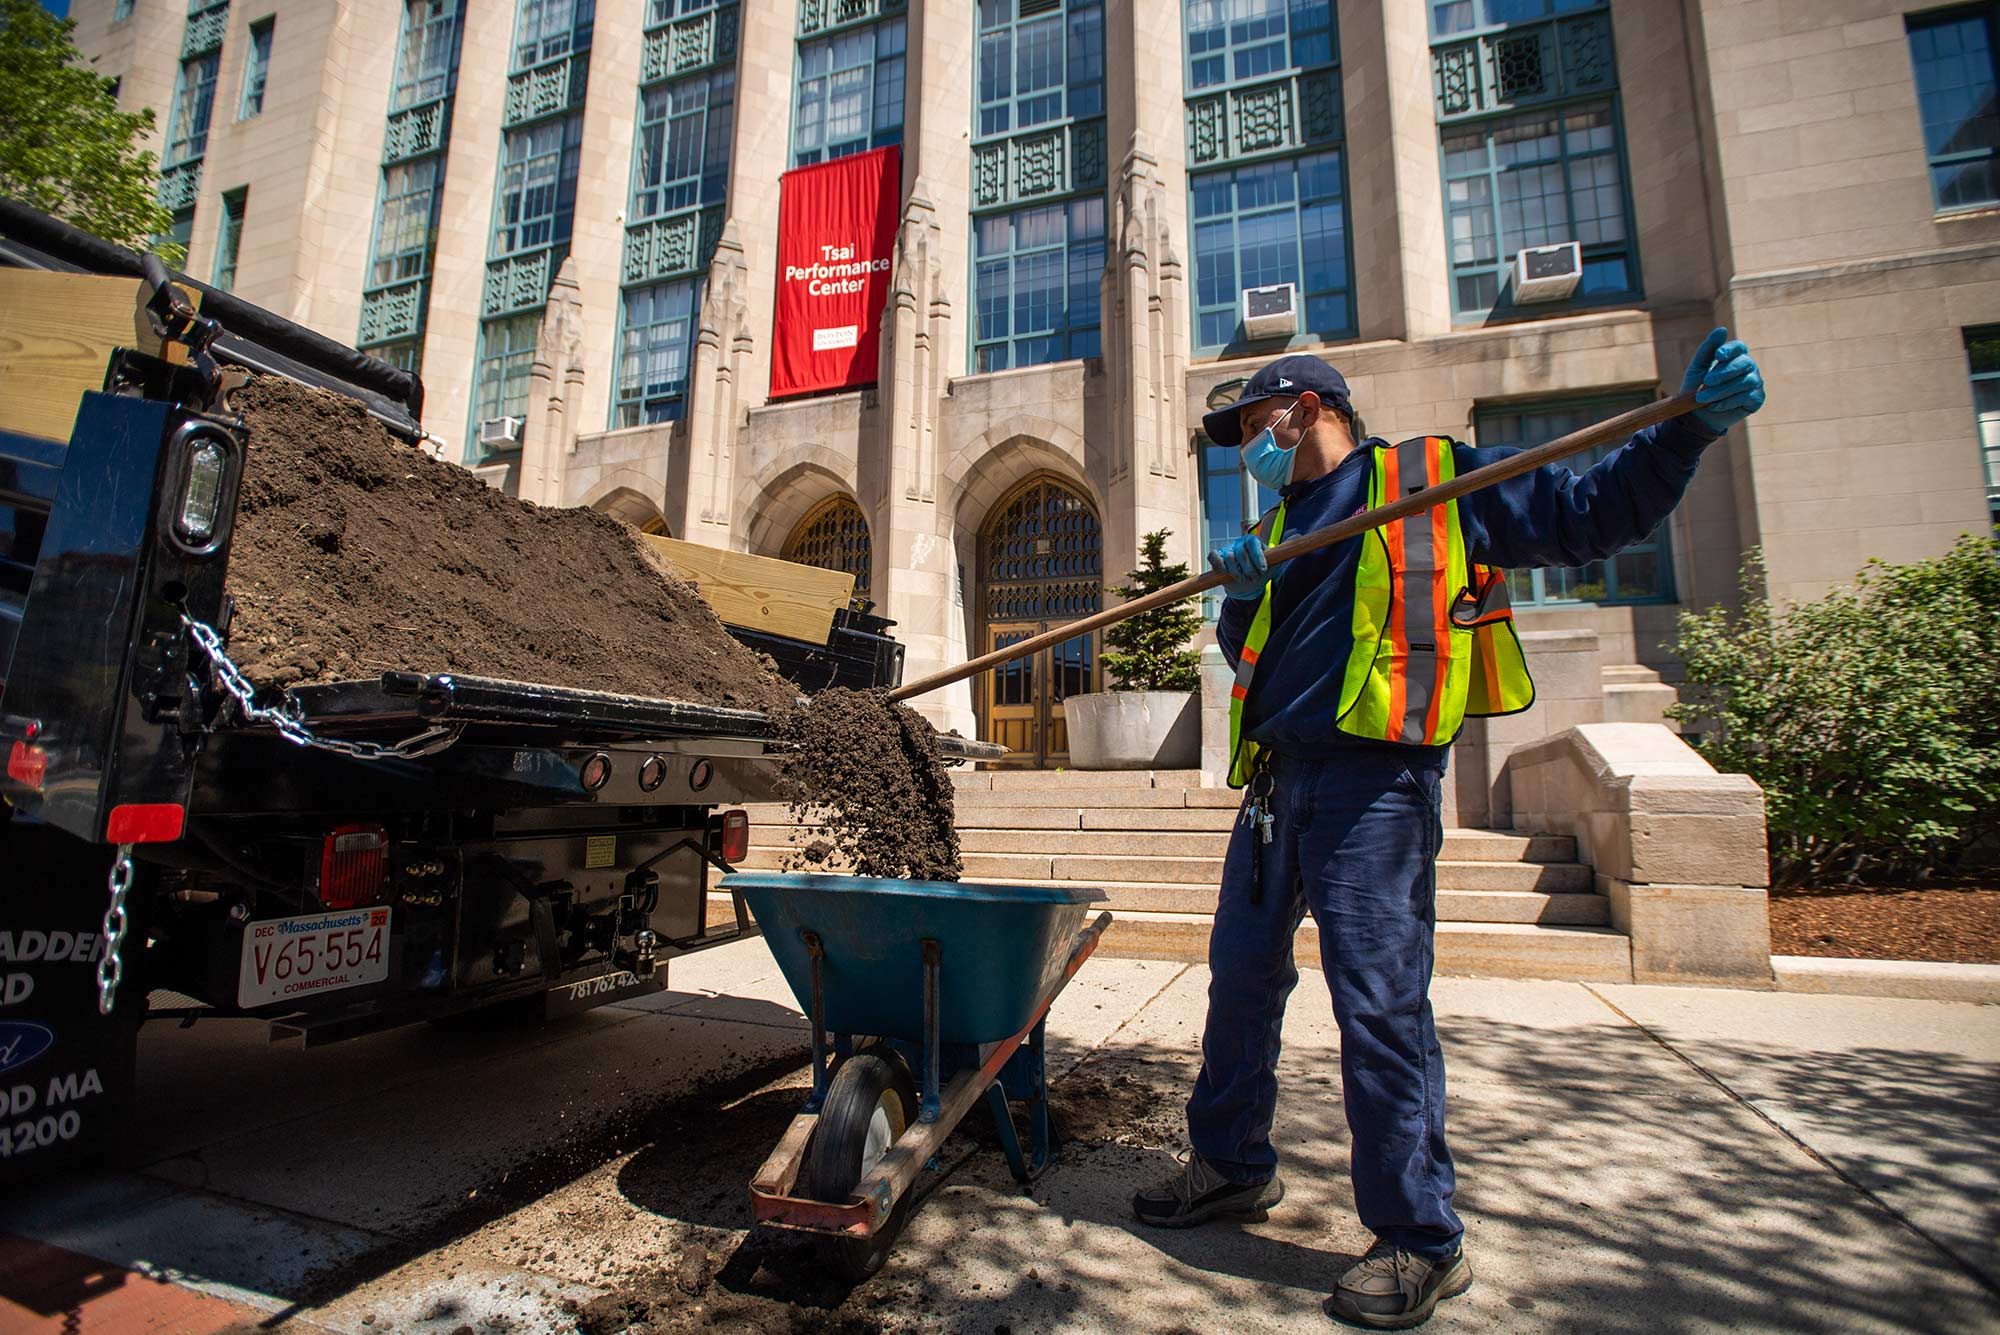 Image of Larry Herrera, of BU's Grounds crew, moving dirt into a wheelbarrow to lay grass seed along CAS on May 13, 2020. He wears a mask, baseball cap, and reflector vest.